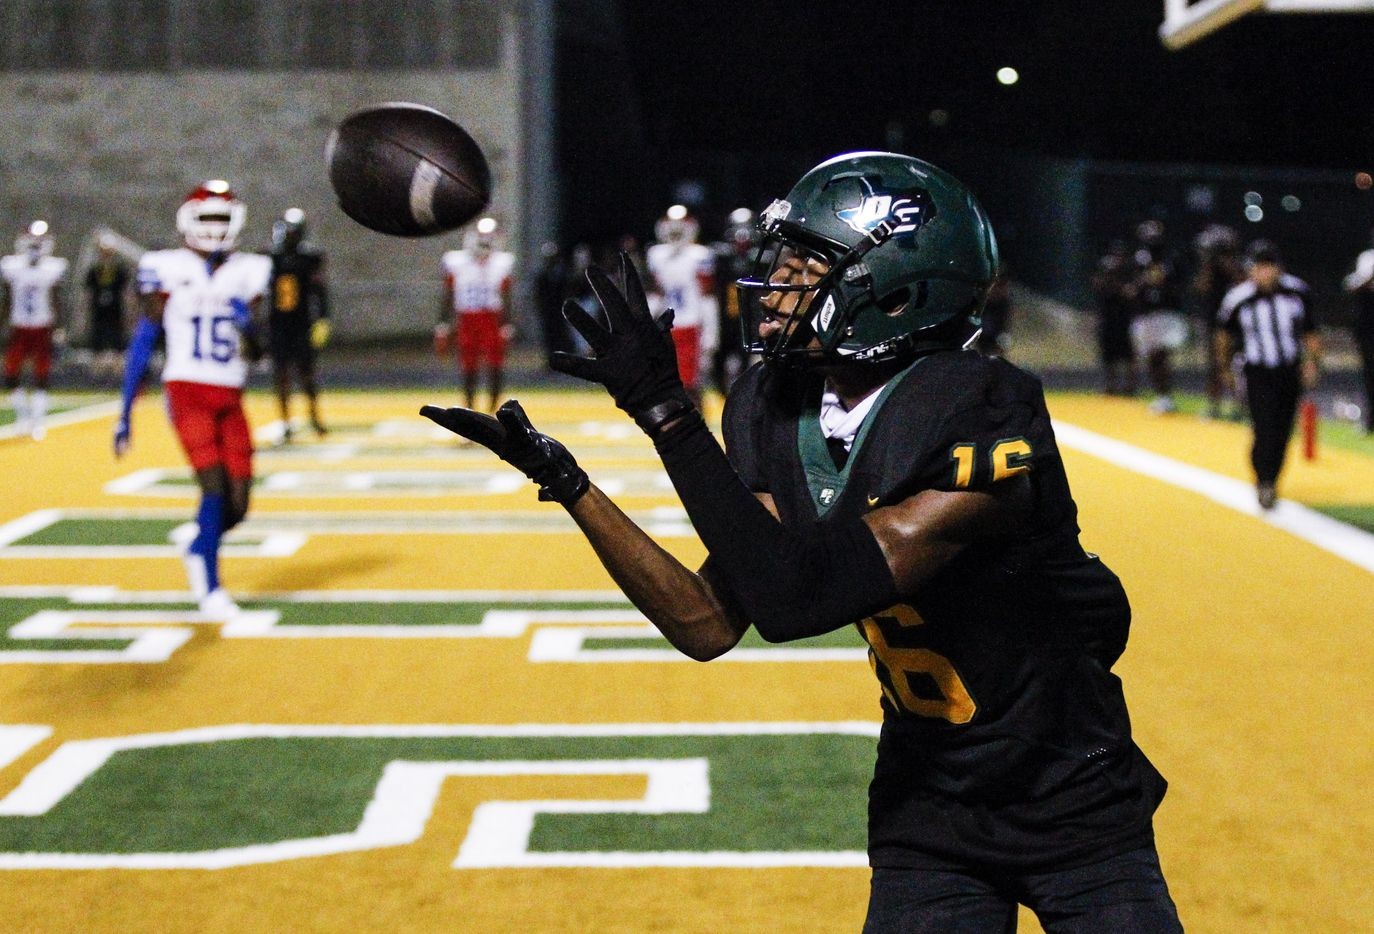 DeSoto senior wide receiver Jaylan Bean (16) catches a pass for a touchdown during the second half of a high school football game against Duncanville at DeSoto High School, Friday, September 17, 2021. Duncanville won 42-21. (Brandon Wade/Special Contributor)